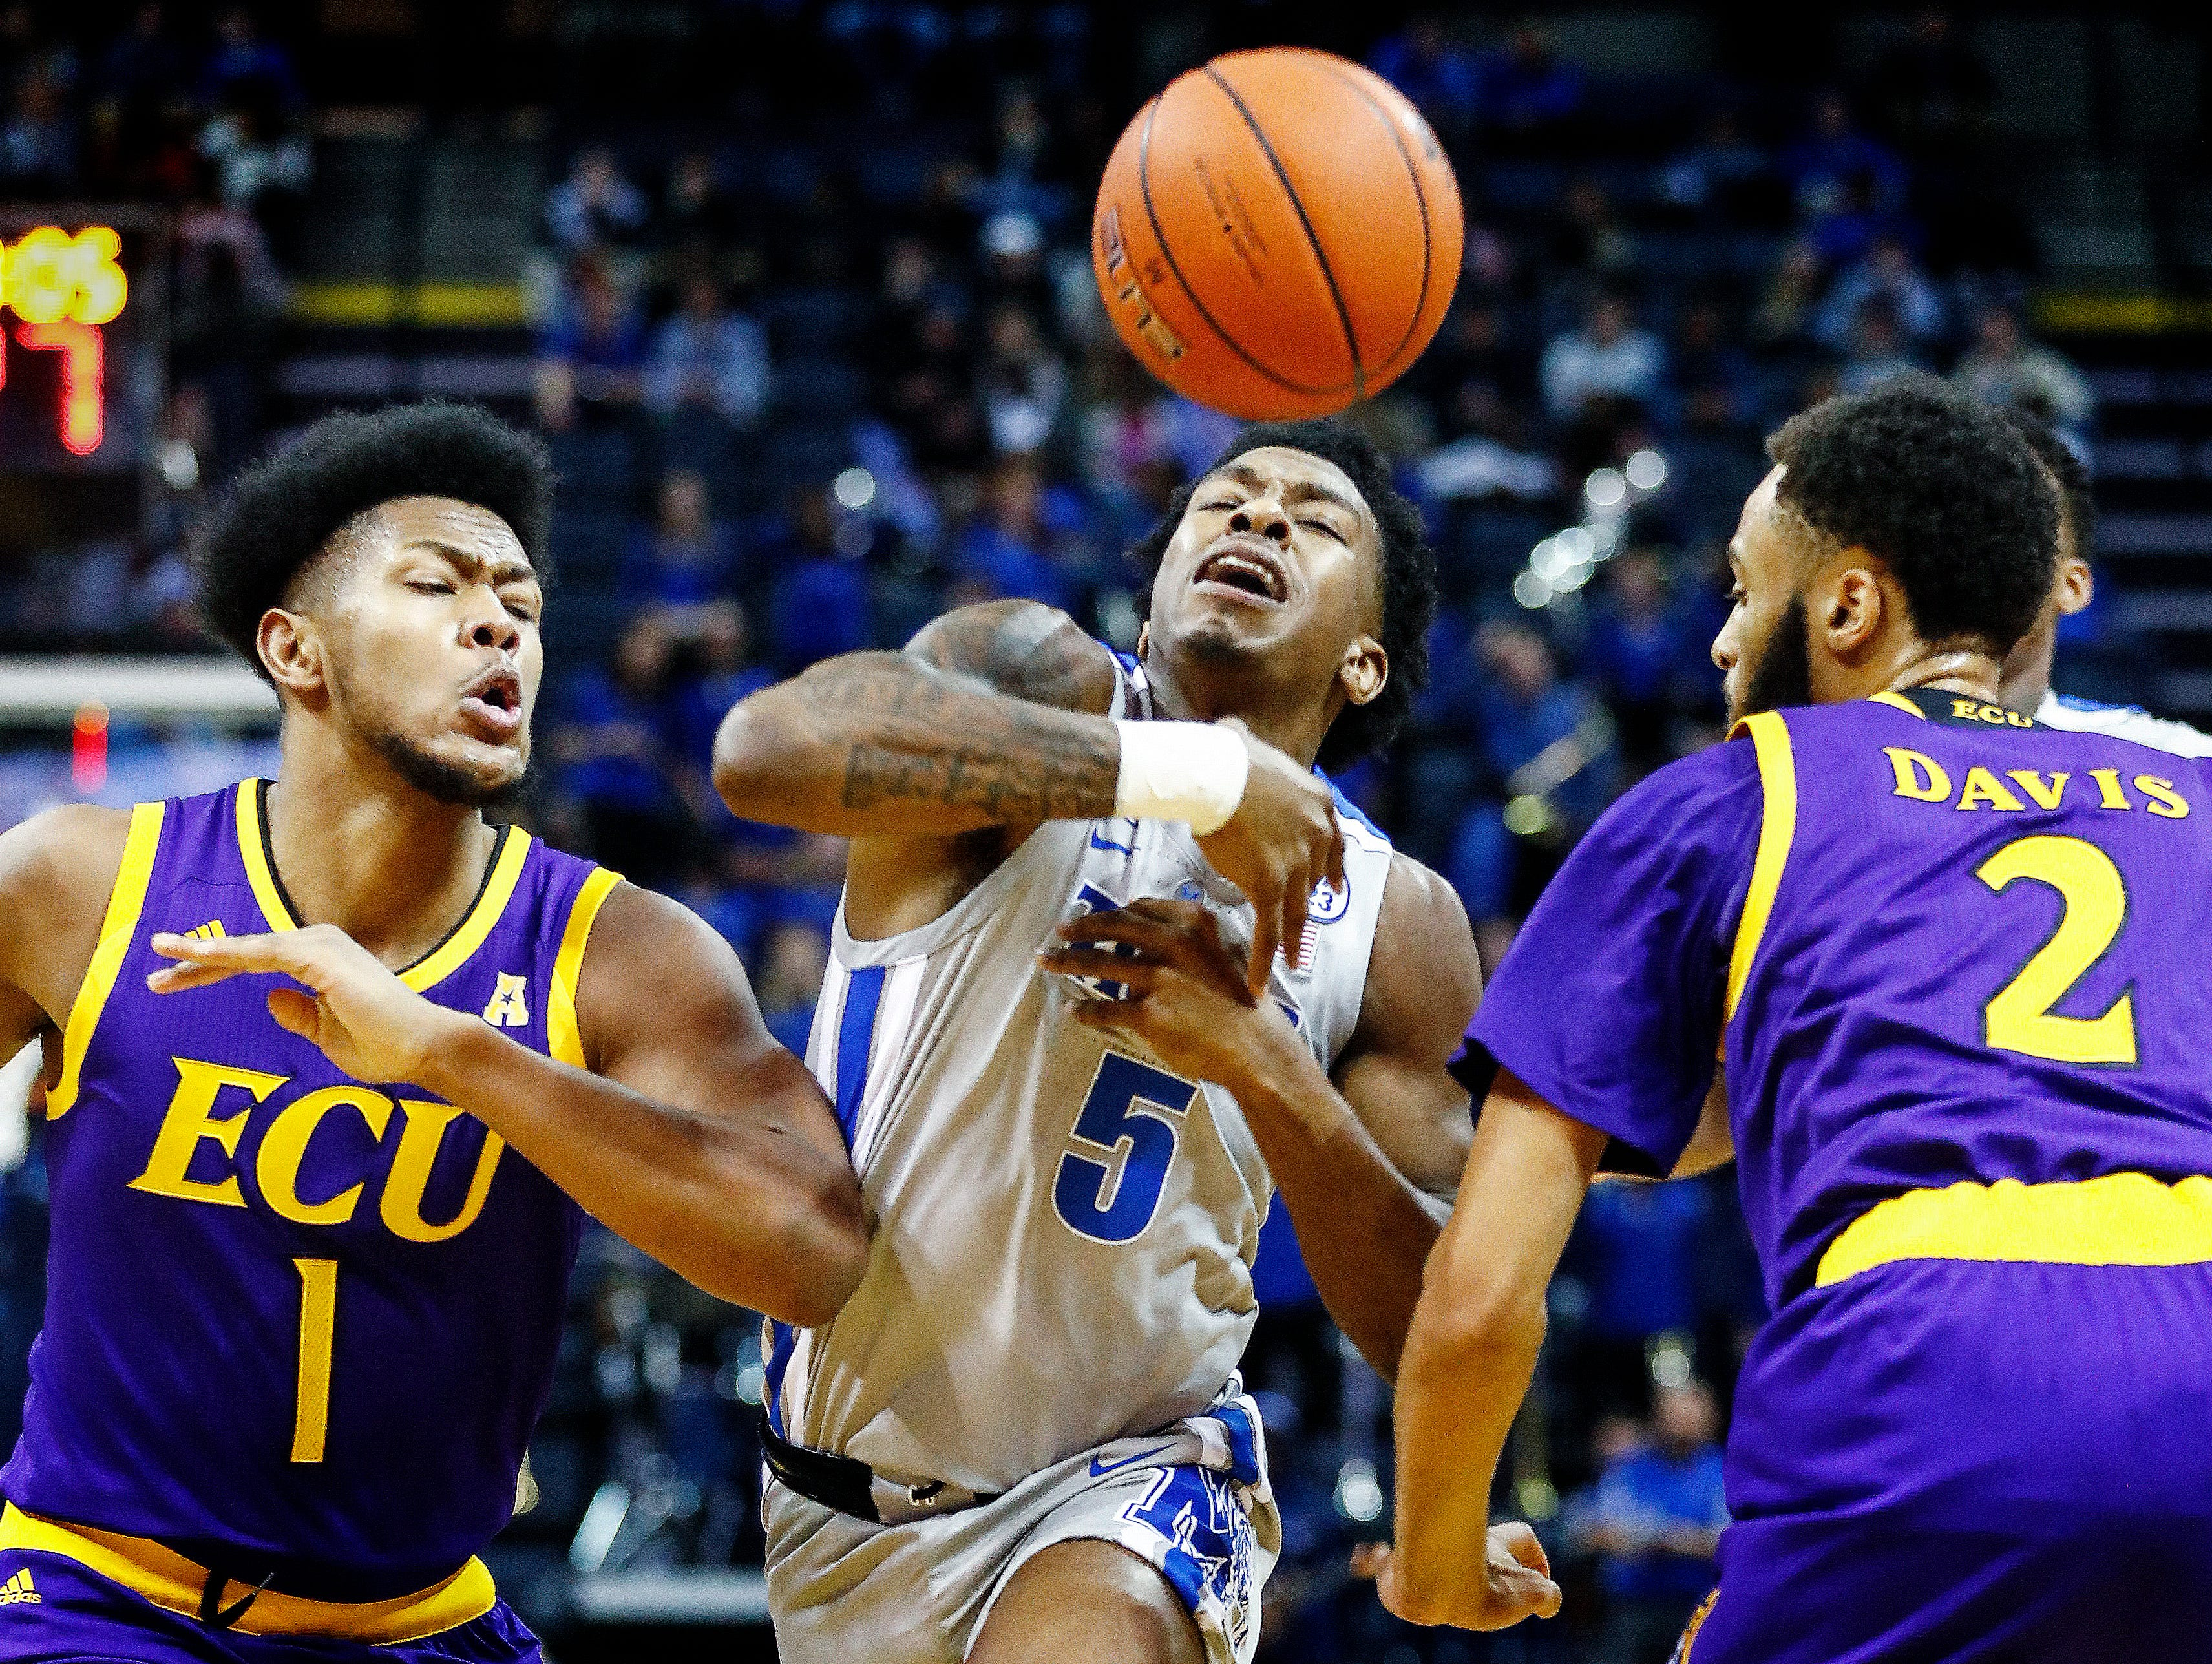 Memphis guard Kareem Brewton Jr. (middle) is fouled while driving the lane against ECU defenders Jayden Gardner (left) K.J. Davis (right) and during action at the FedExForum, Thursday, January 10, 2019.